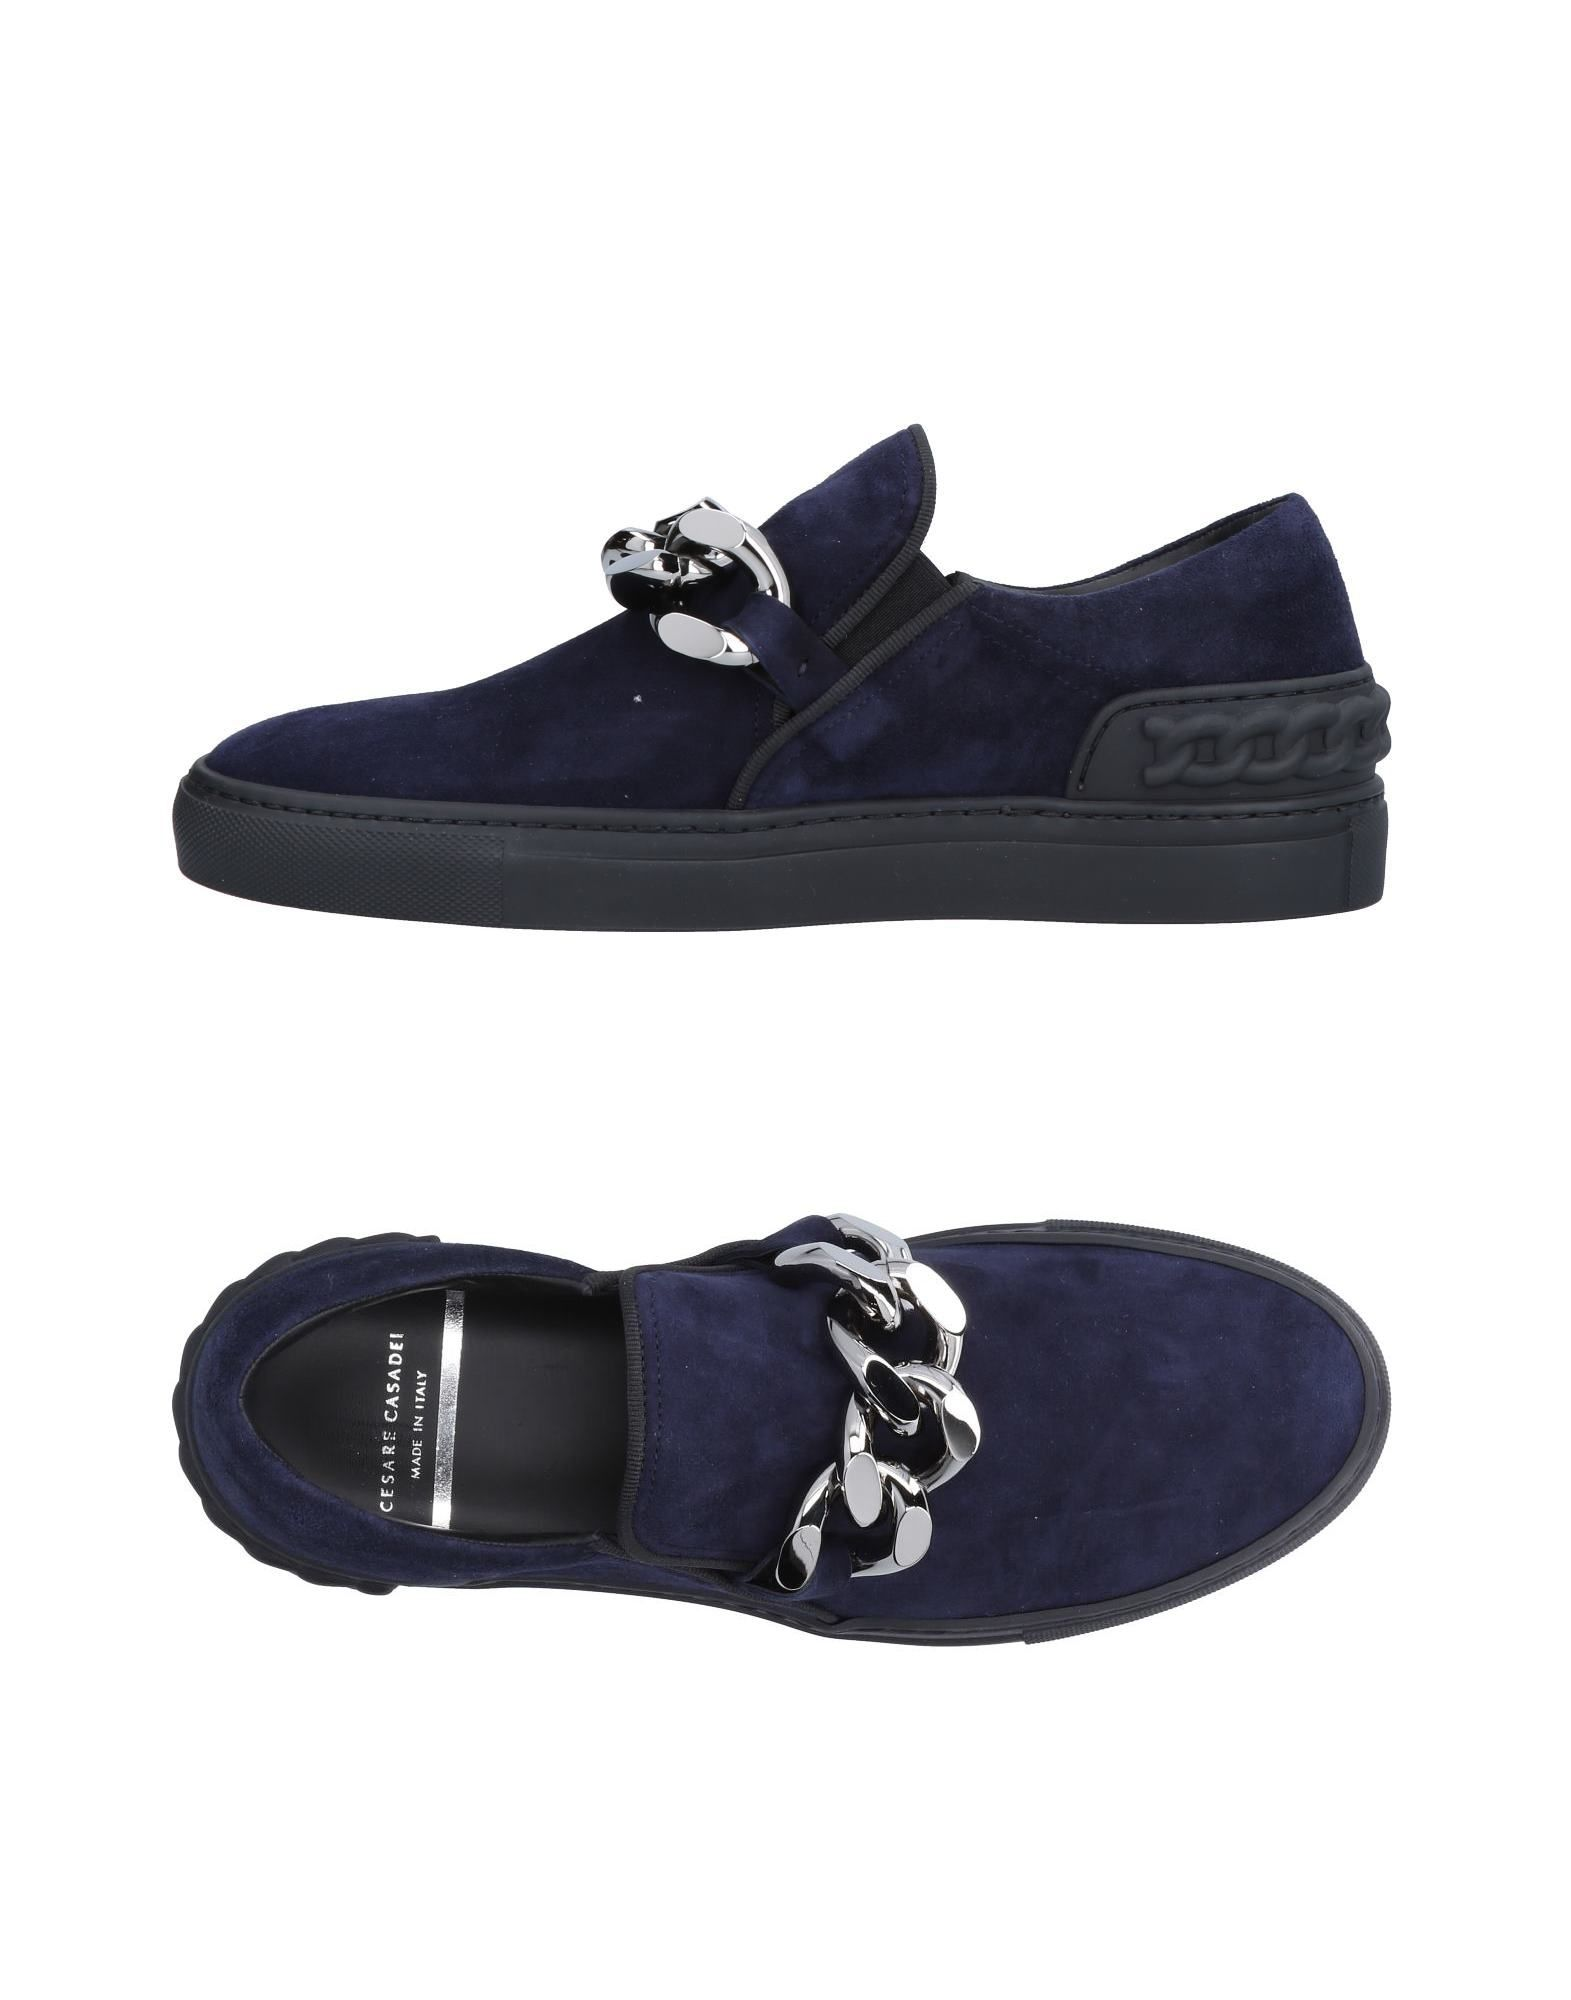 CESARE CASADEI Sneakers in Dark Blue